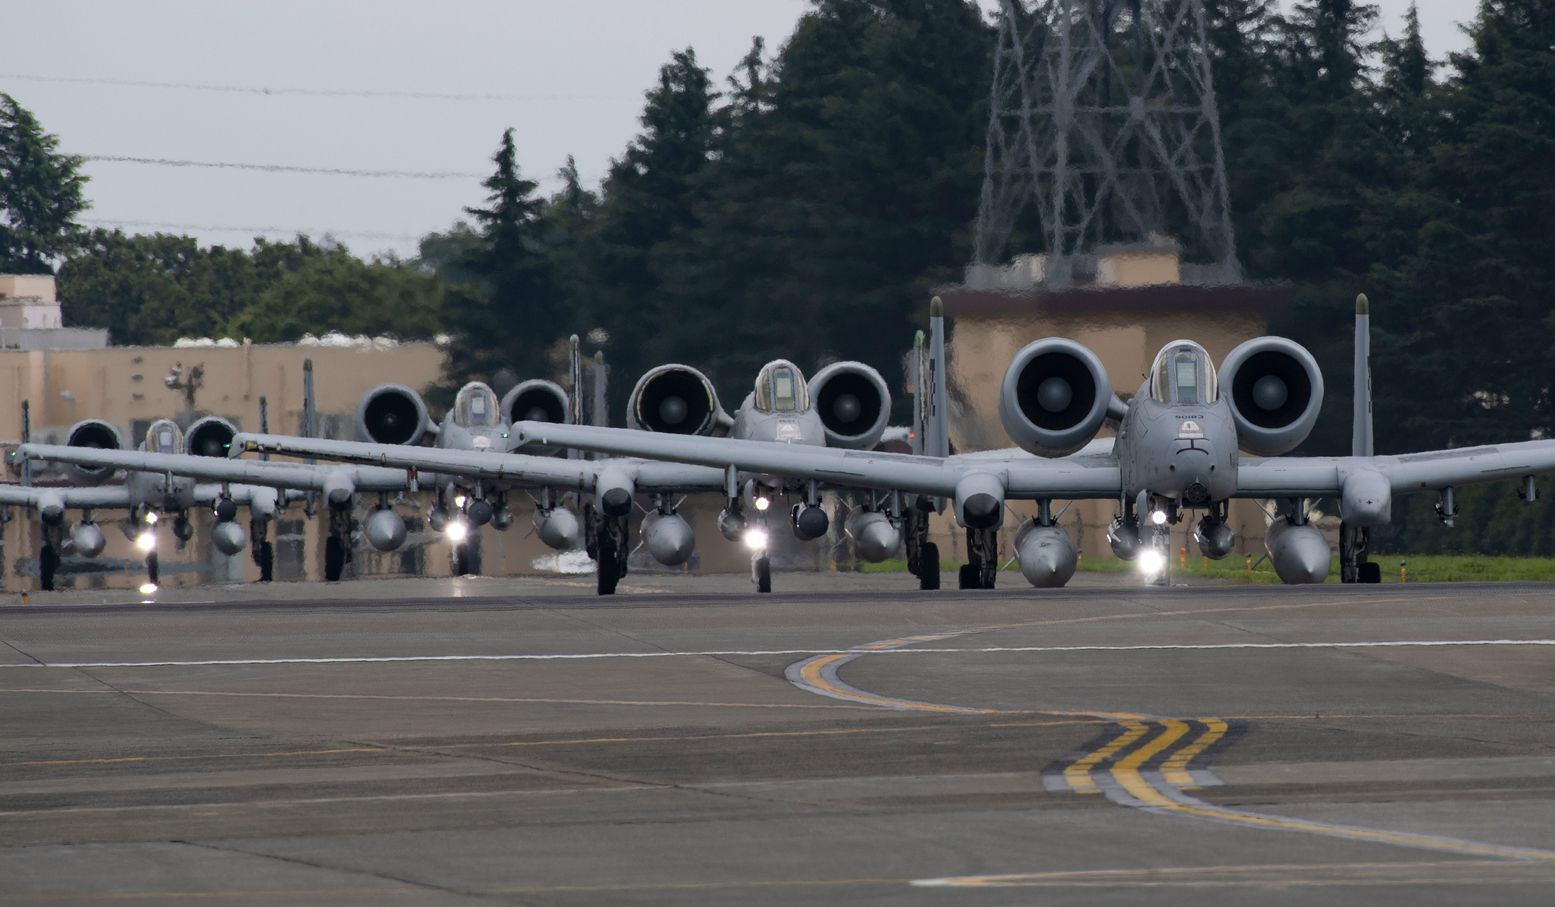 Why the Roaring A-10 Warthog Is a Powerful and Scary Weapon